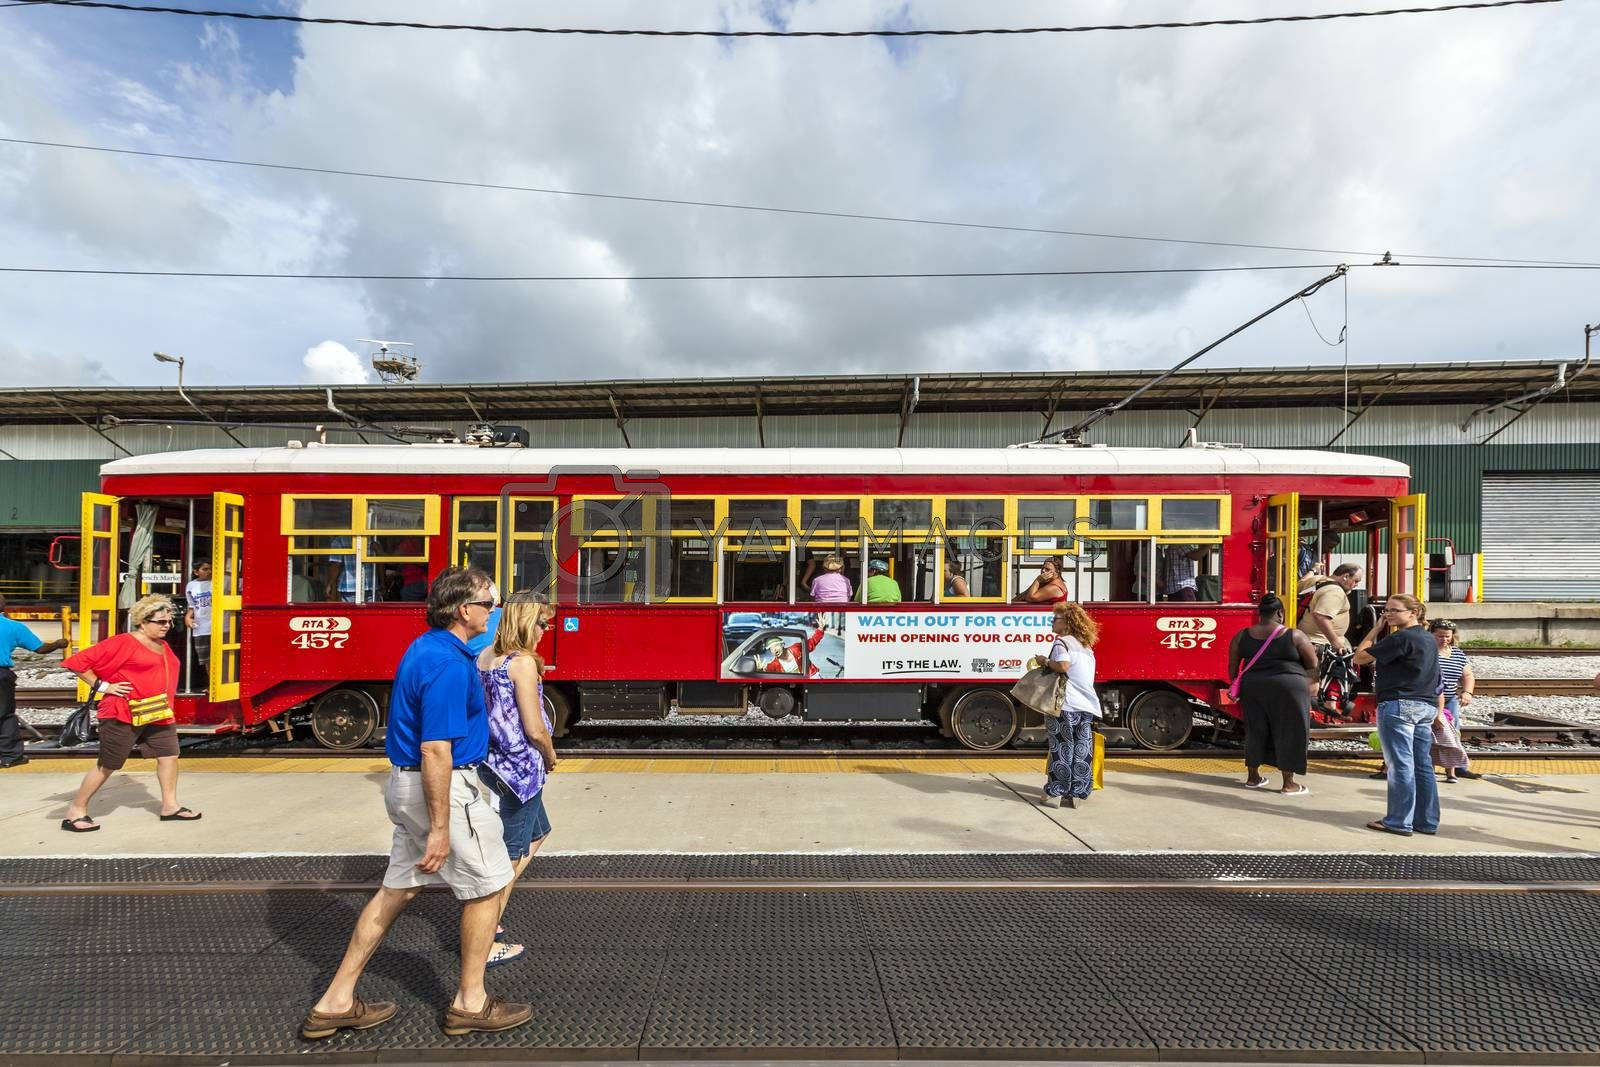 NEW ORLEANS, USA - JULY 16, 2013: people enter  the riverfront  Streetcar Line in New Orleans, USA. Revamped after Hurricane Katrina in 2005, the New Orleans Streetcar line began electric operation in 1893.